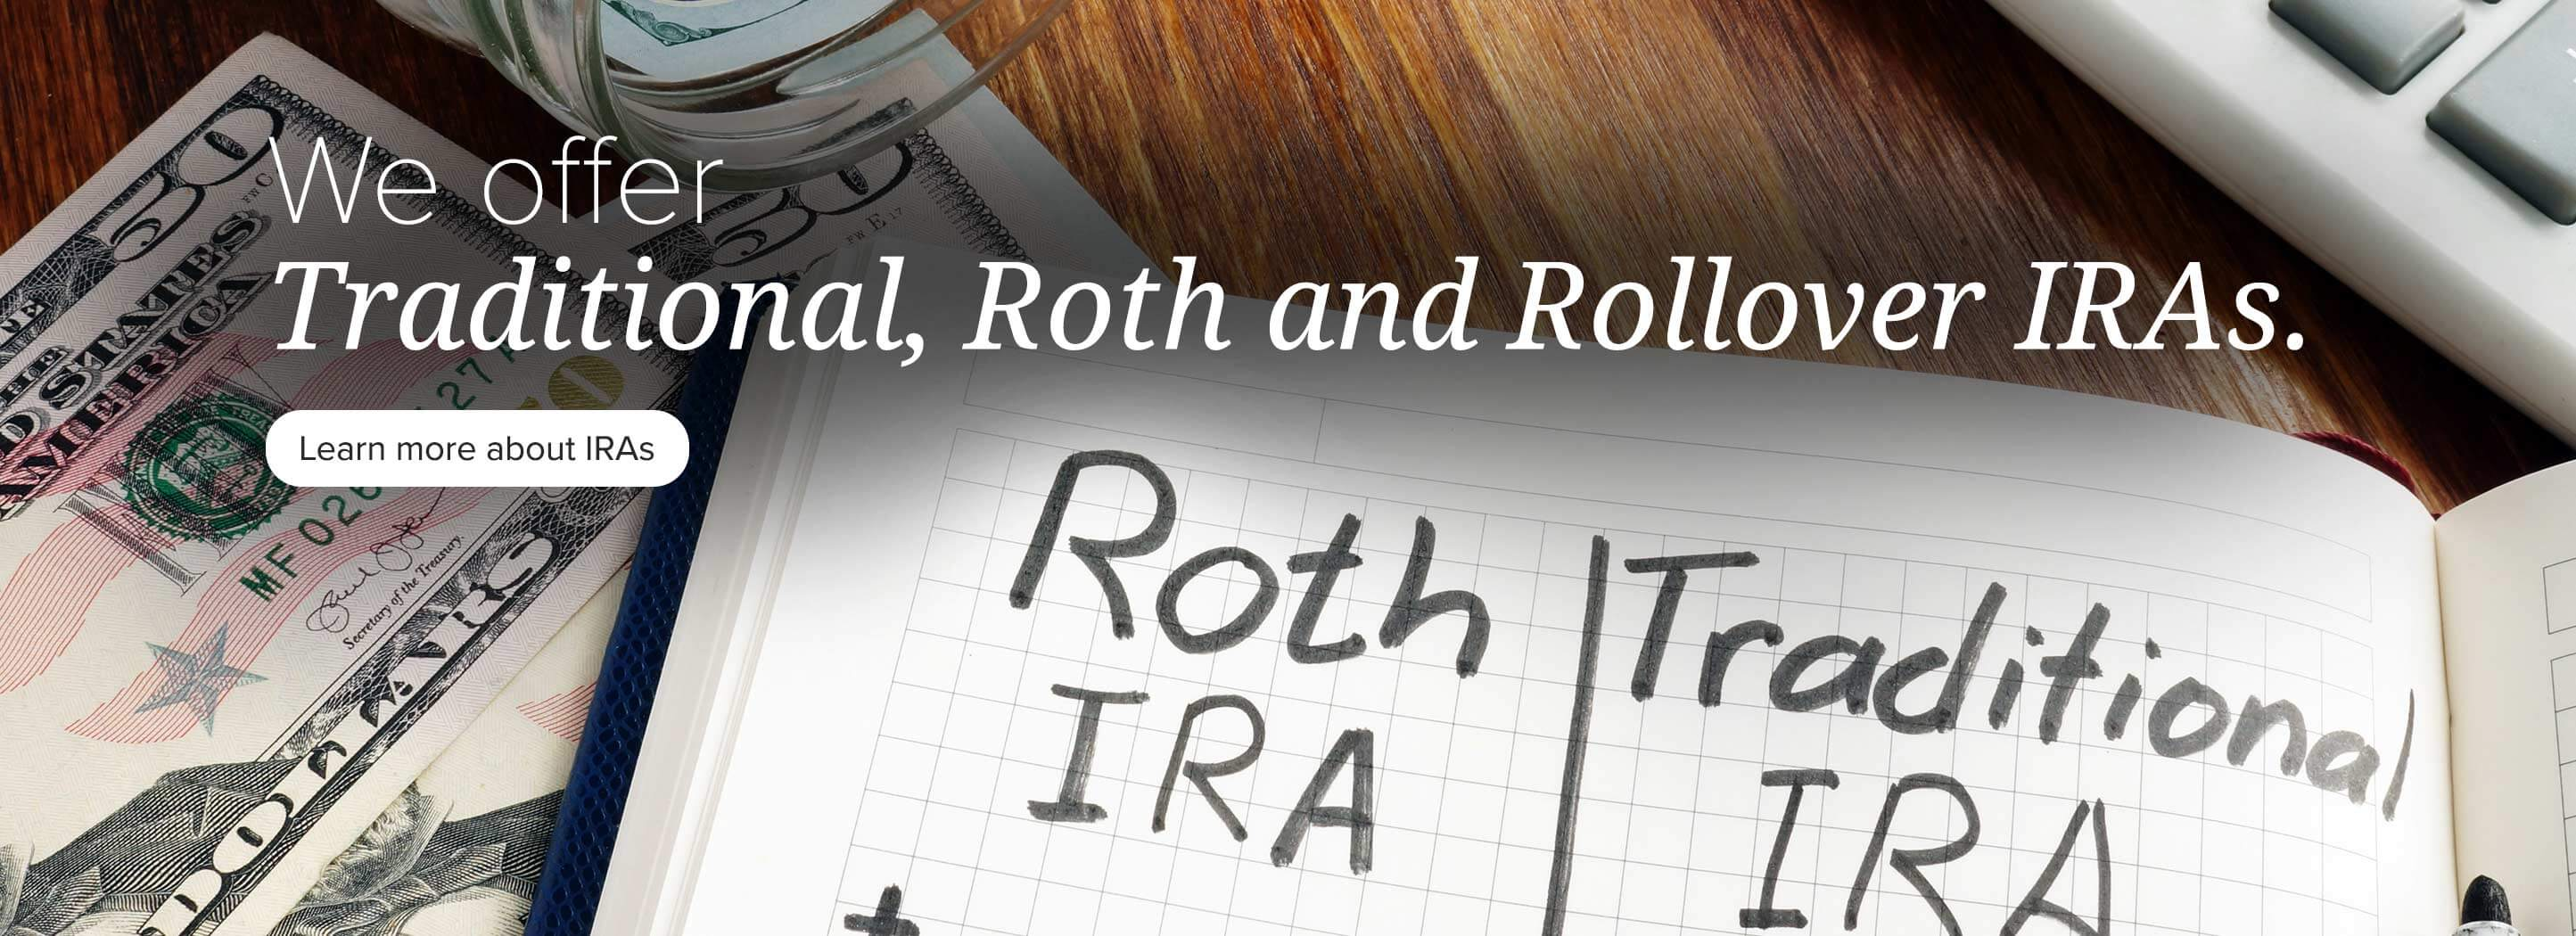 We offer traditional, Roth and Rollover IRAs. Learn more about IRAs